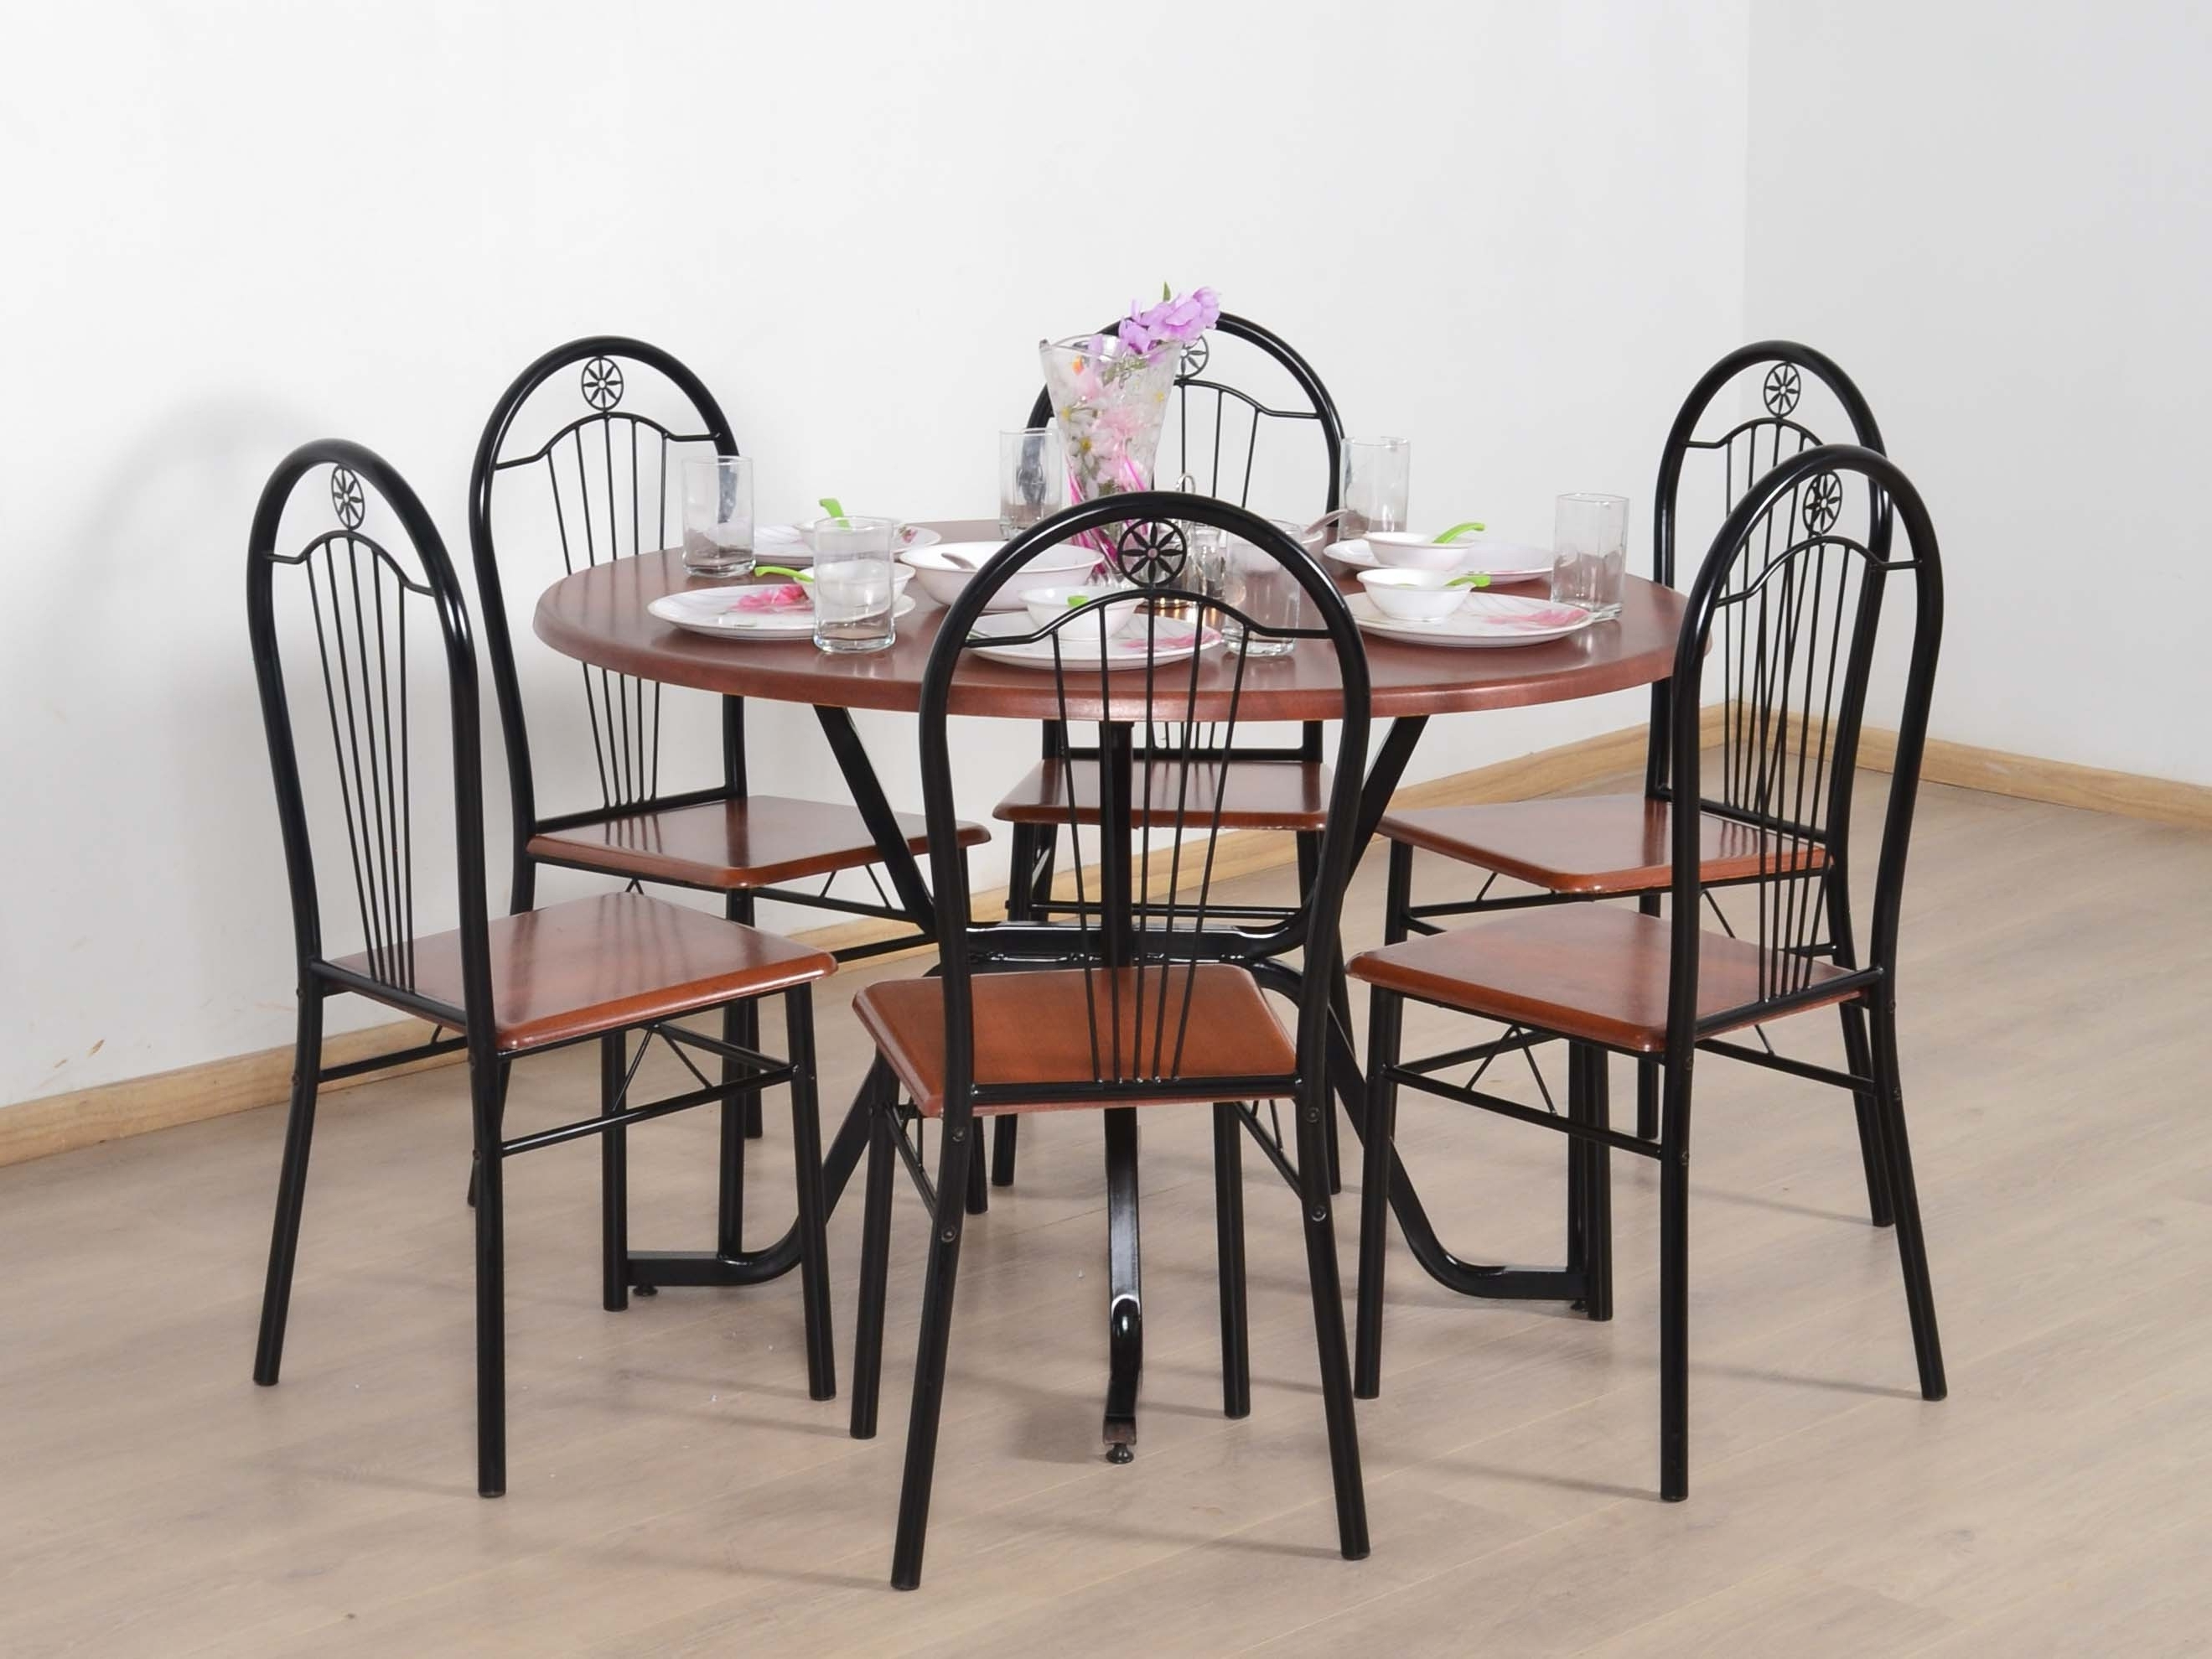 2017 Round 6 Seater Dining Tables Intended For Caterva 6 Seater Round Dining Table Set: Buy And Sell Used Furniture (View 21 of 25)